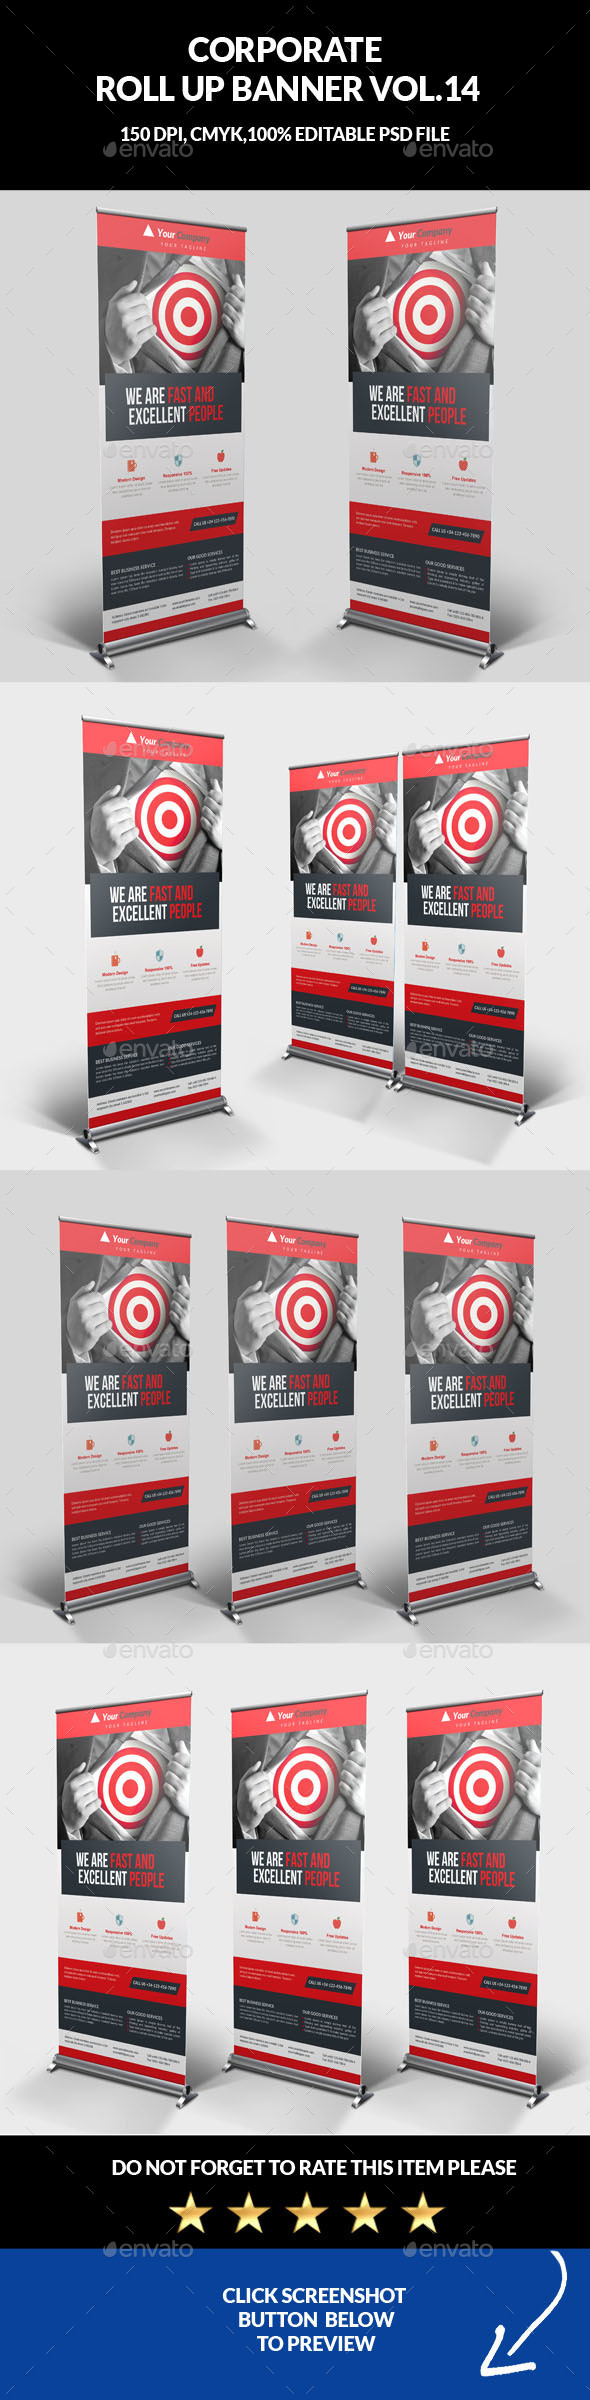 Corporate Business Roll Up Banner Vol.14 - Signage Print Templates